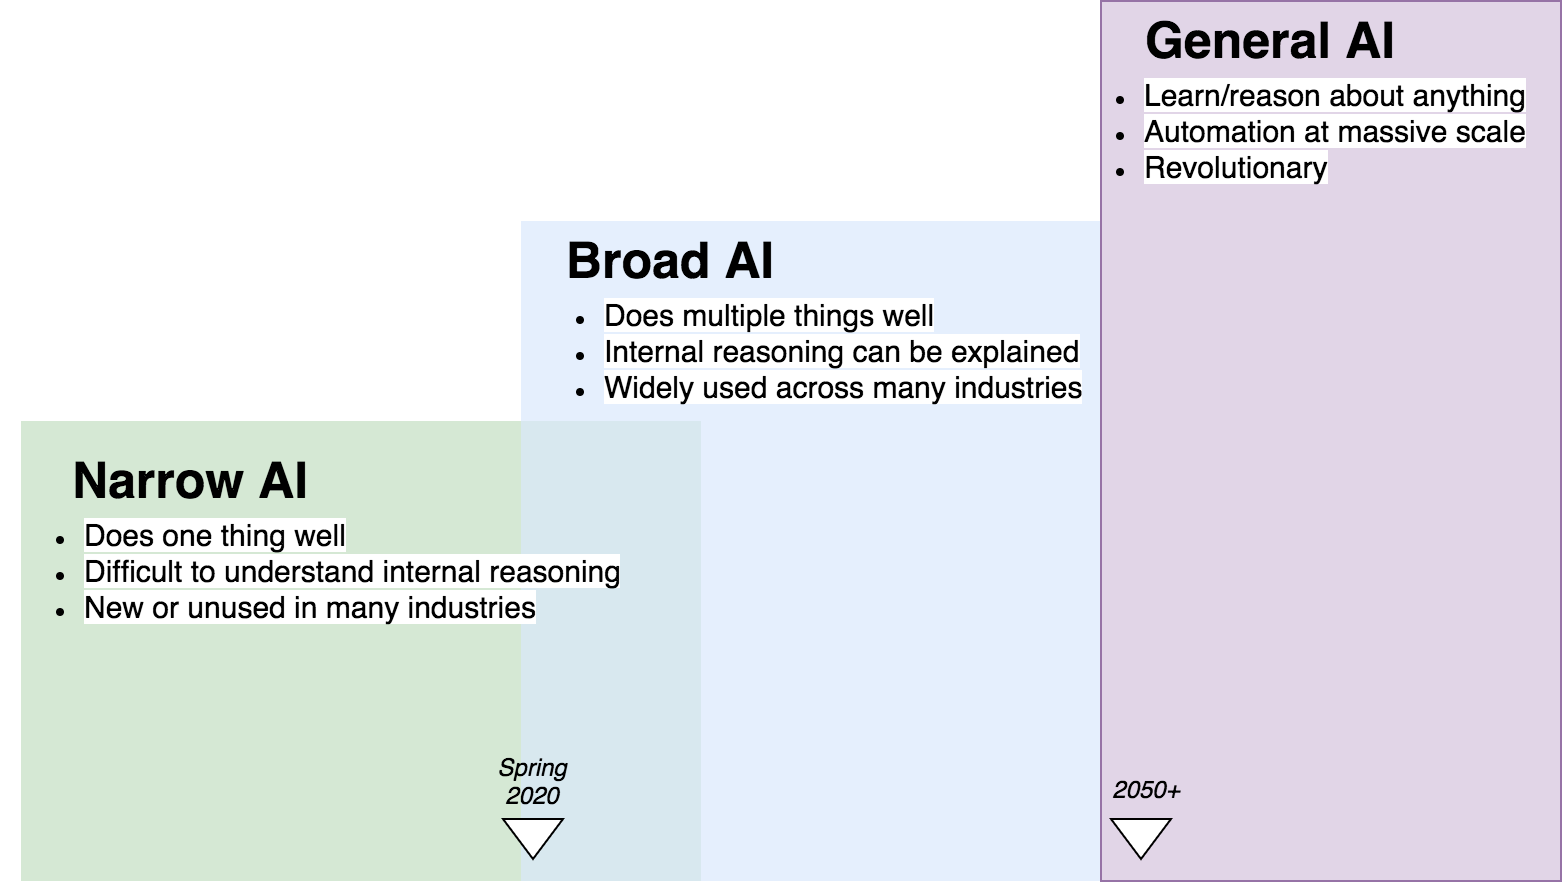 A diagram composed of three boxes representing the three major phases of artificial intelligence. The smallest box represents Narrow AI, capable of doing one thing well, is difficult to understand, and is new or unused in many industries. The medium sized box is for Broad AI, which can do multiple things well, has explainable internal reasoning, and is widely used across many industries. Current state of the art is between these two boxes. The largest box symbolizes General AI, capable of learning and reasoning about anything, automates at massive scale, and revolutionizes society.